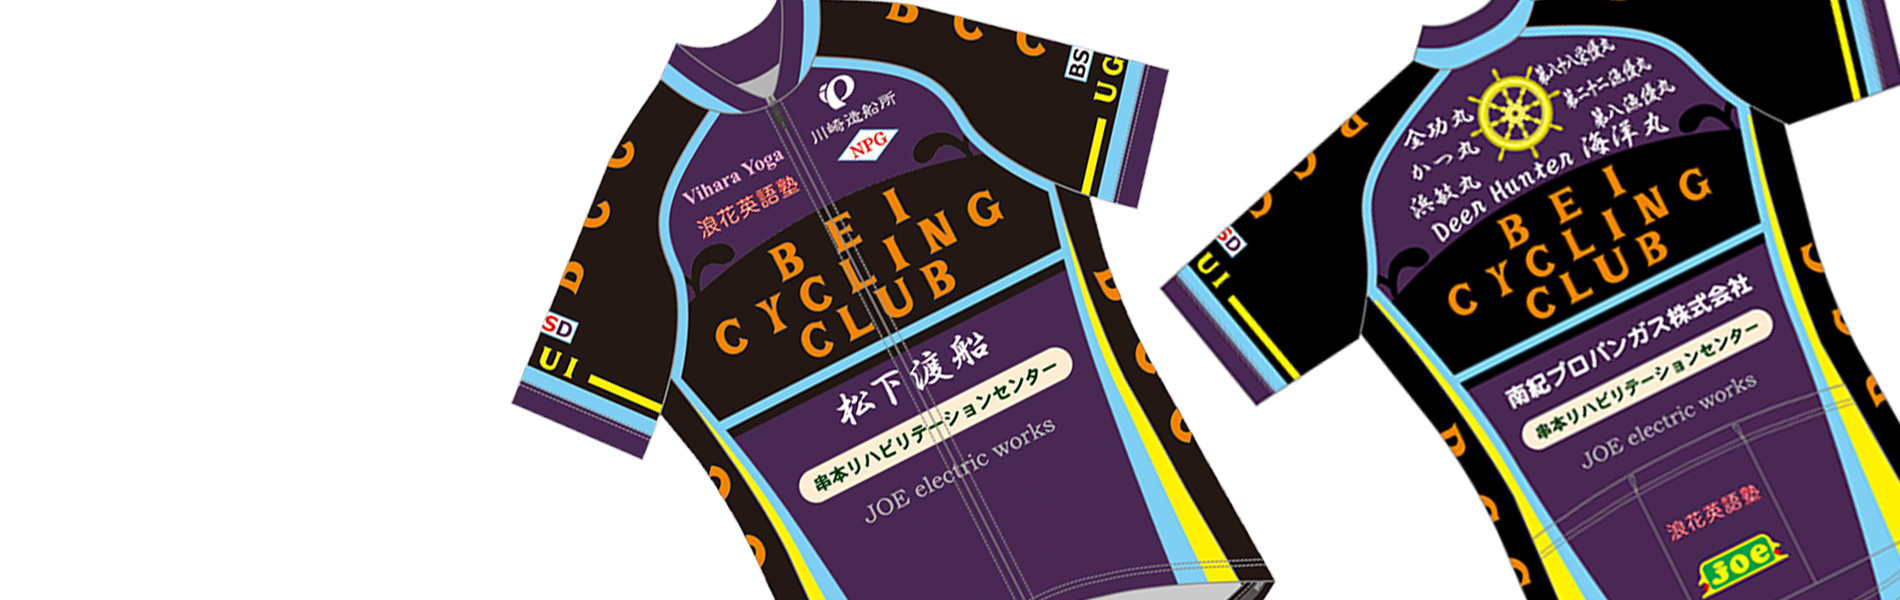 Bei Cycling Club